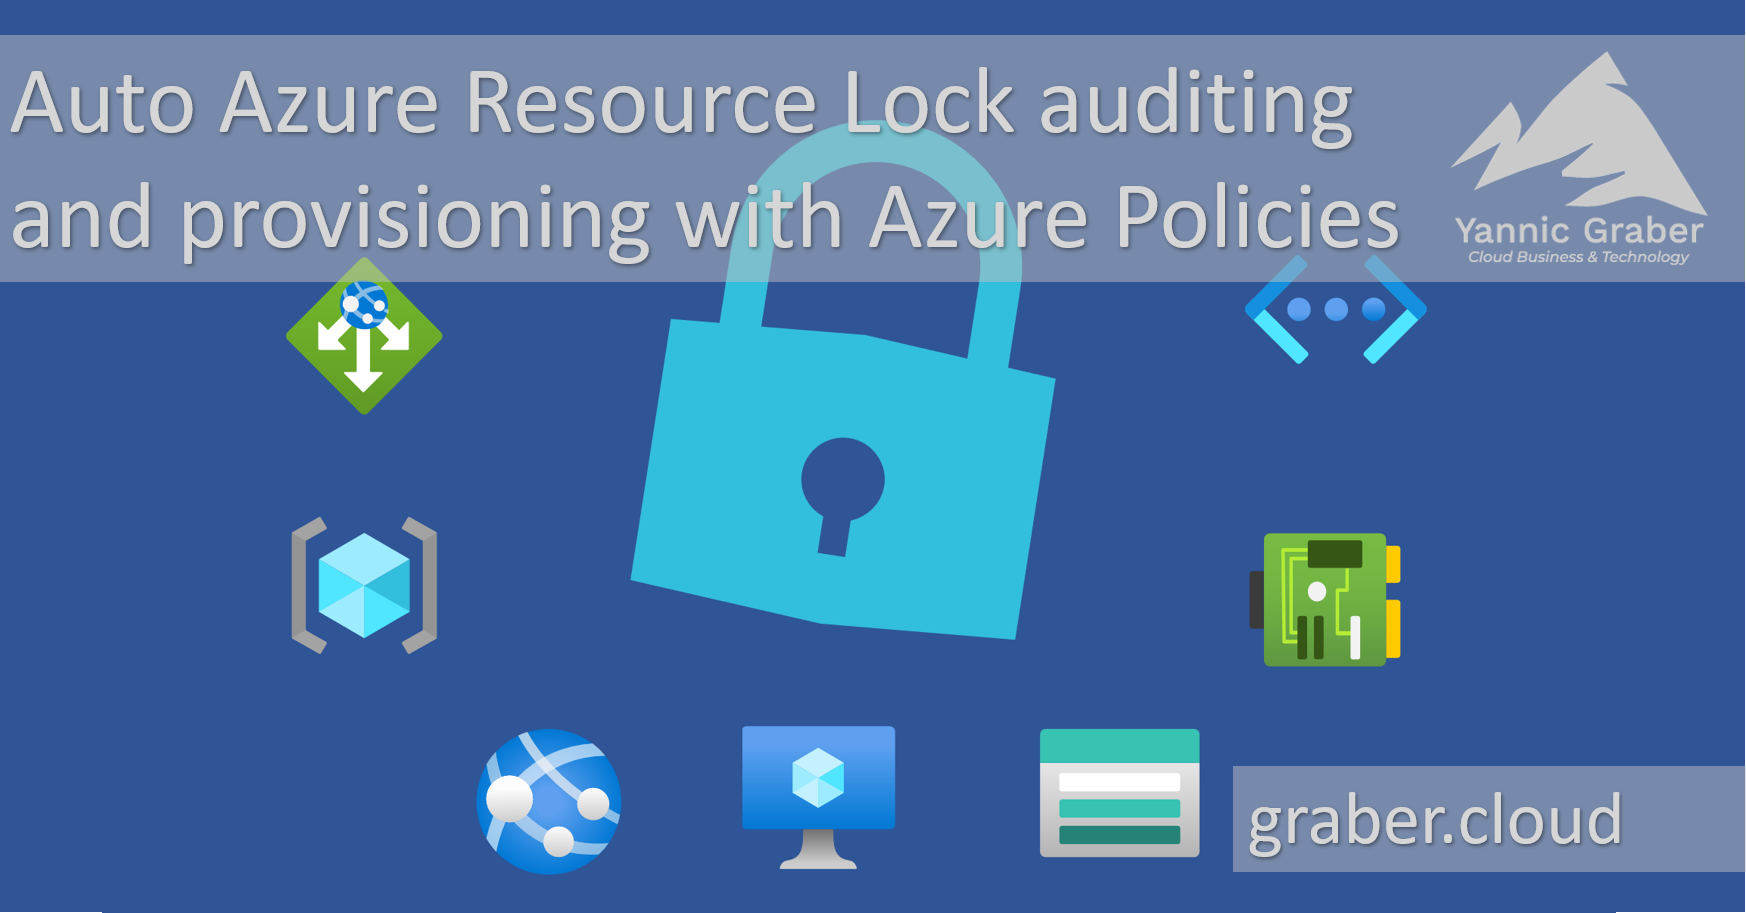 Banner - Auto Azure RG Lock with policies